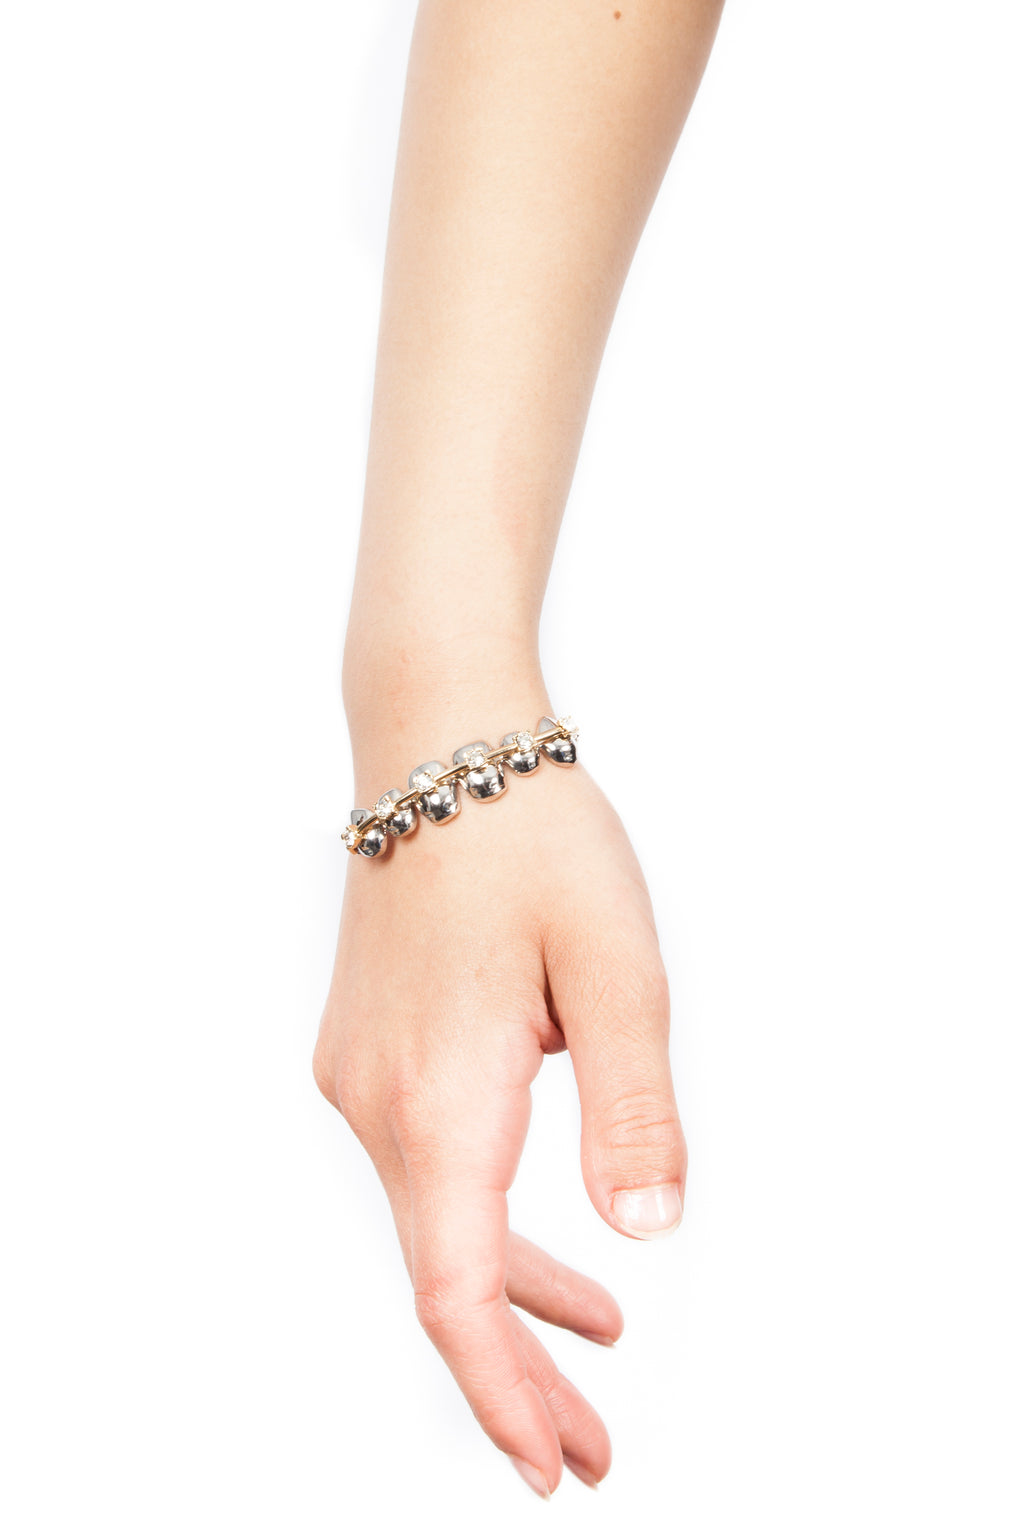 Palladium Brackets Bracelet | Free Delivery - Quick Shipping